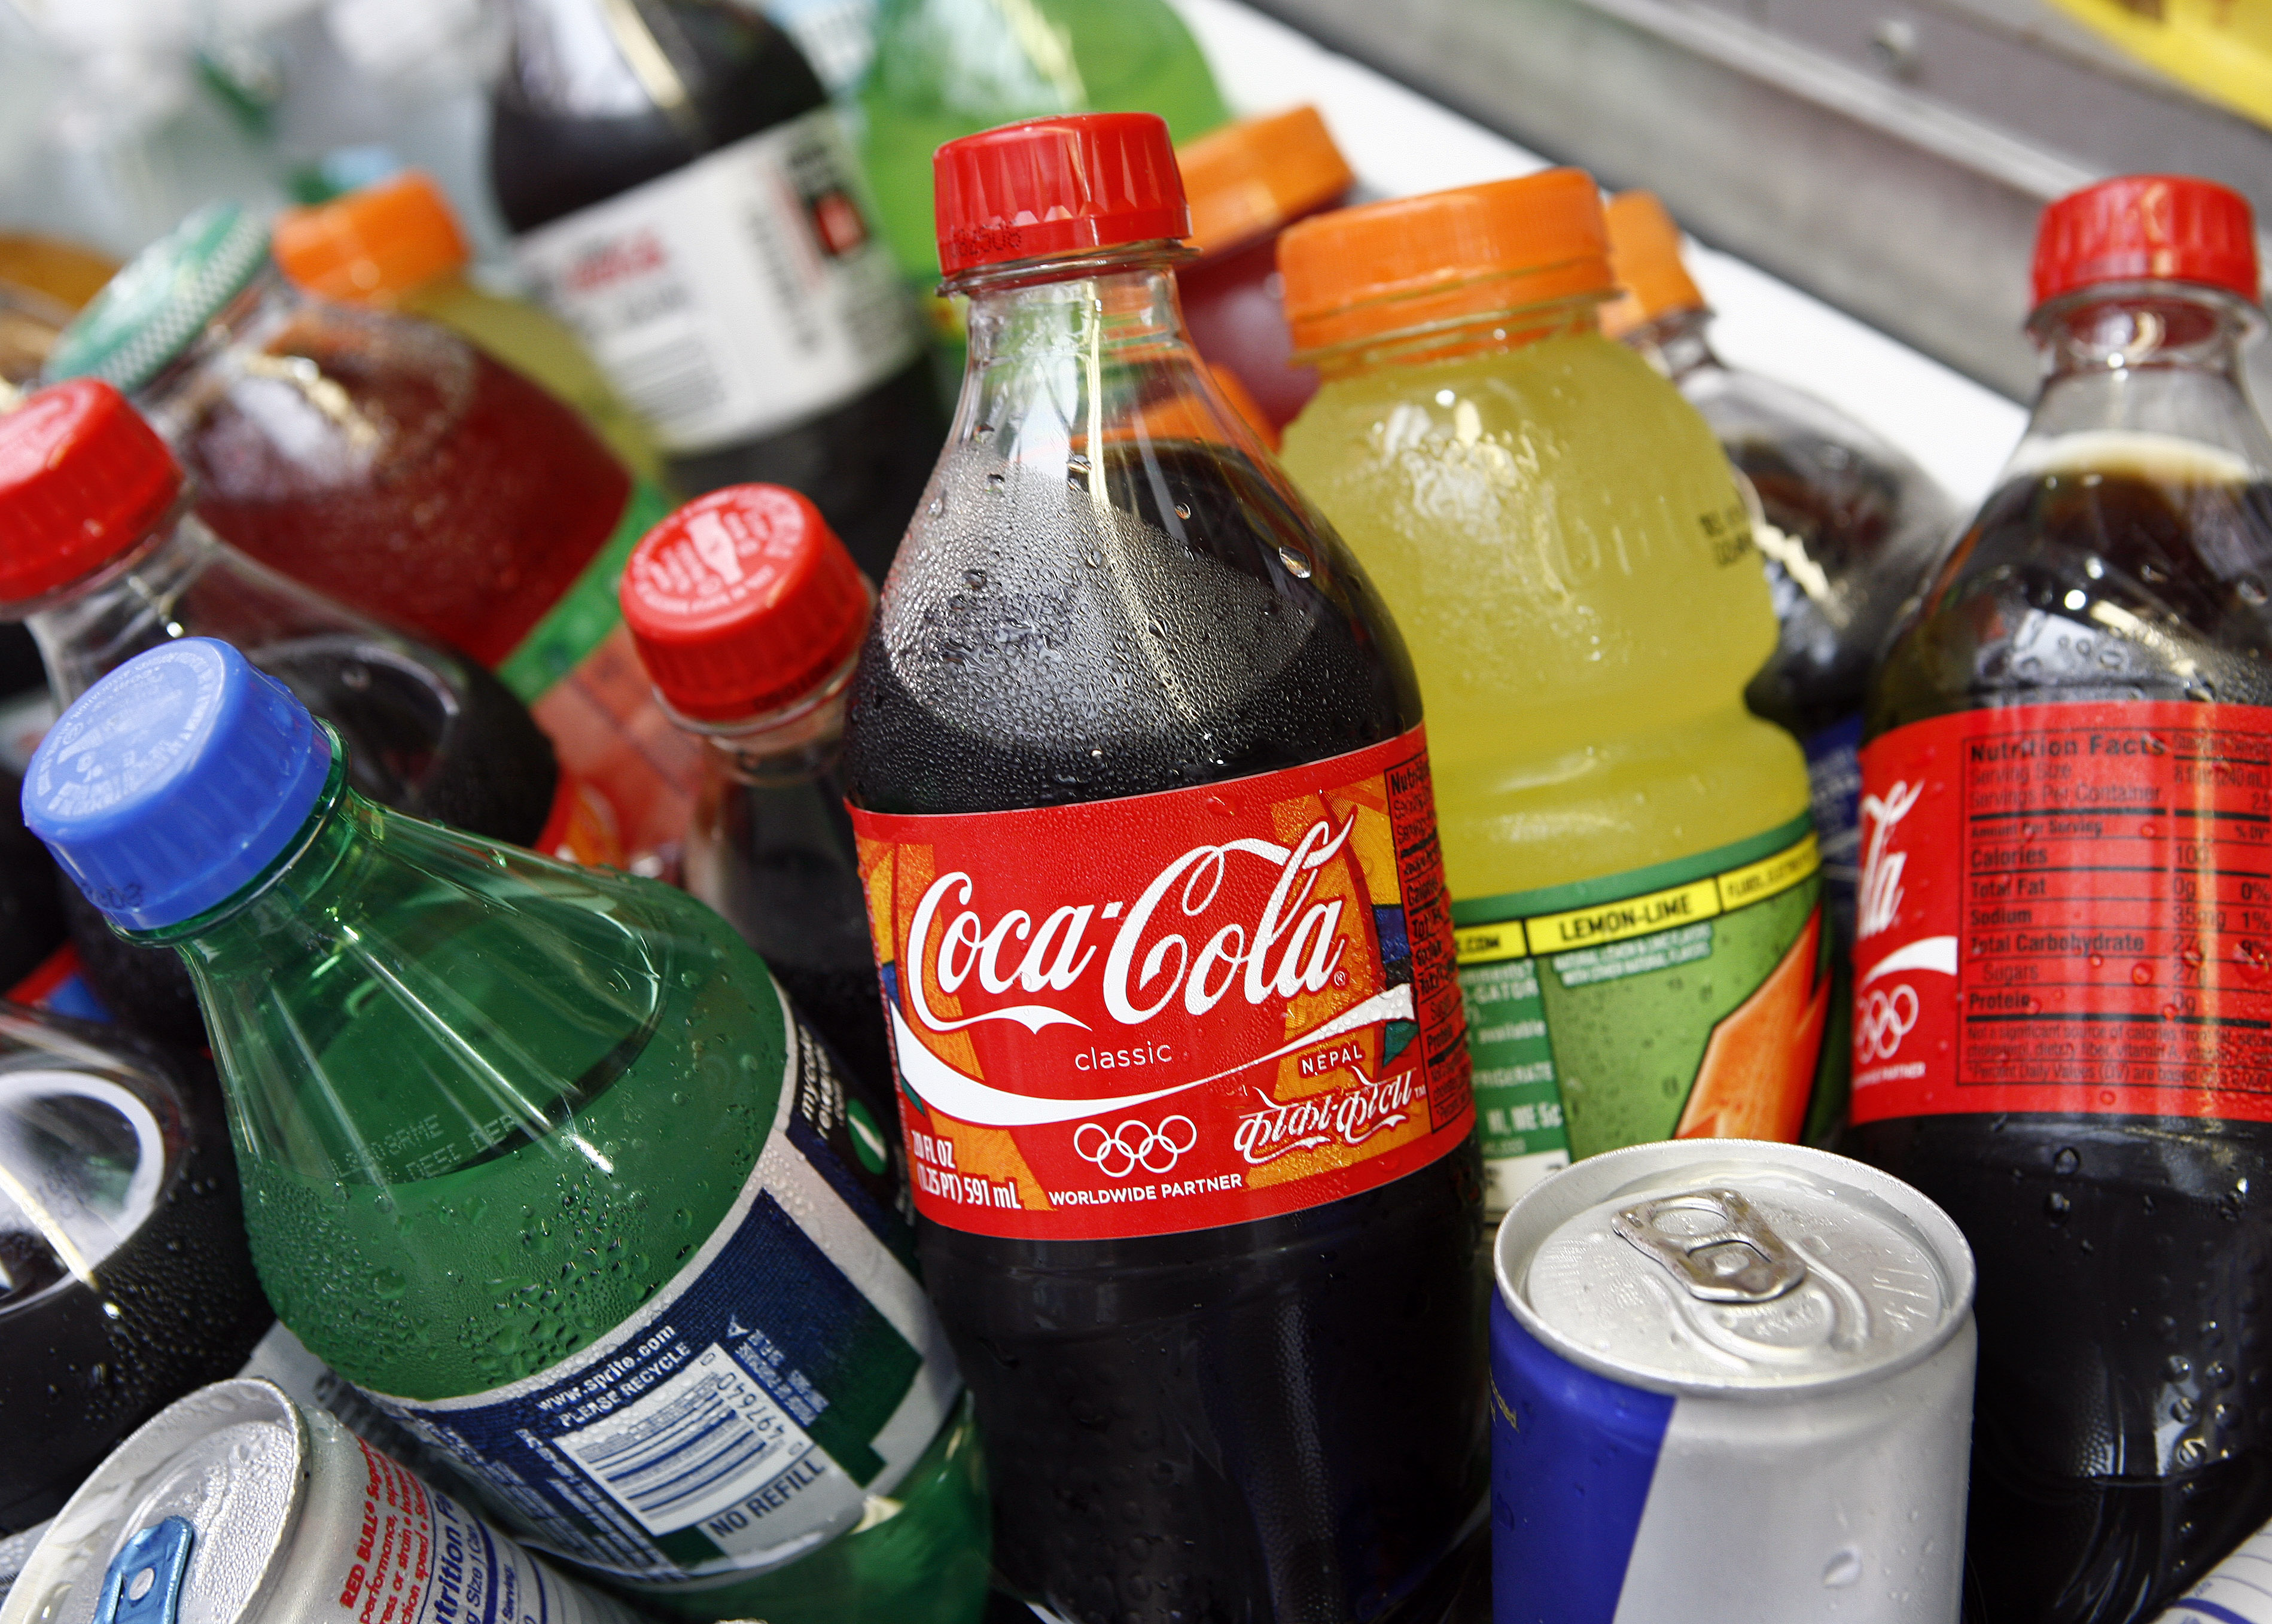 Study Finds Sugary Drinks Linked to 180K Deaths Annually Worldwide